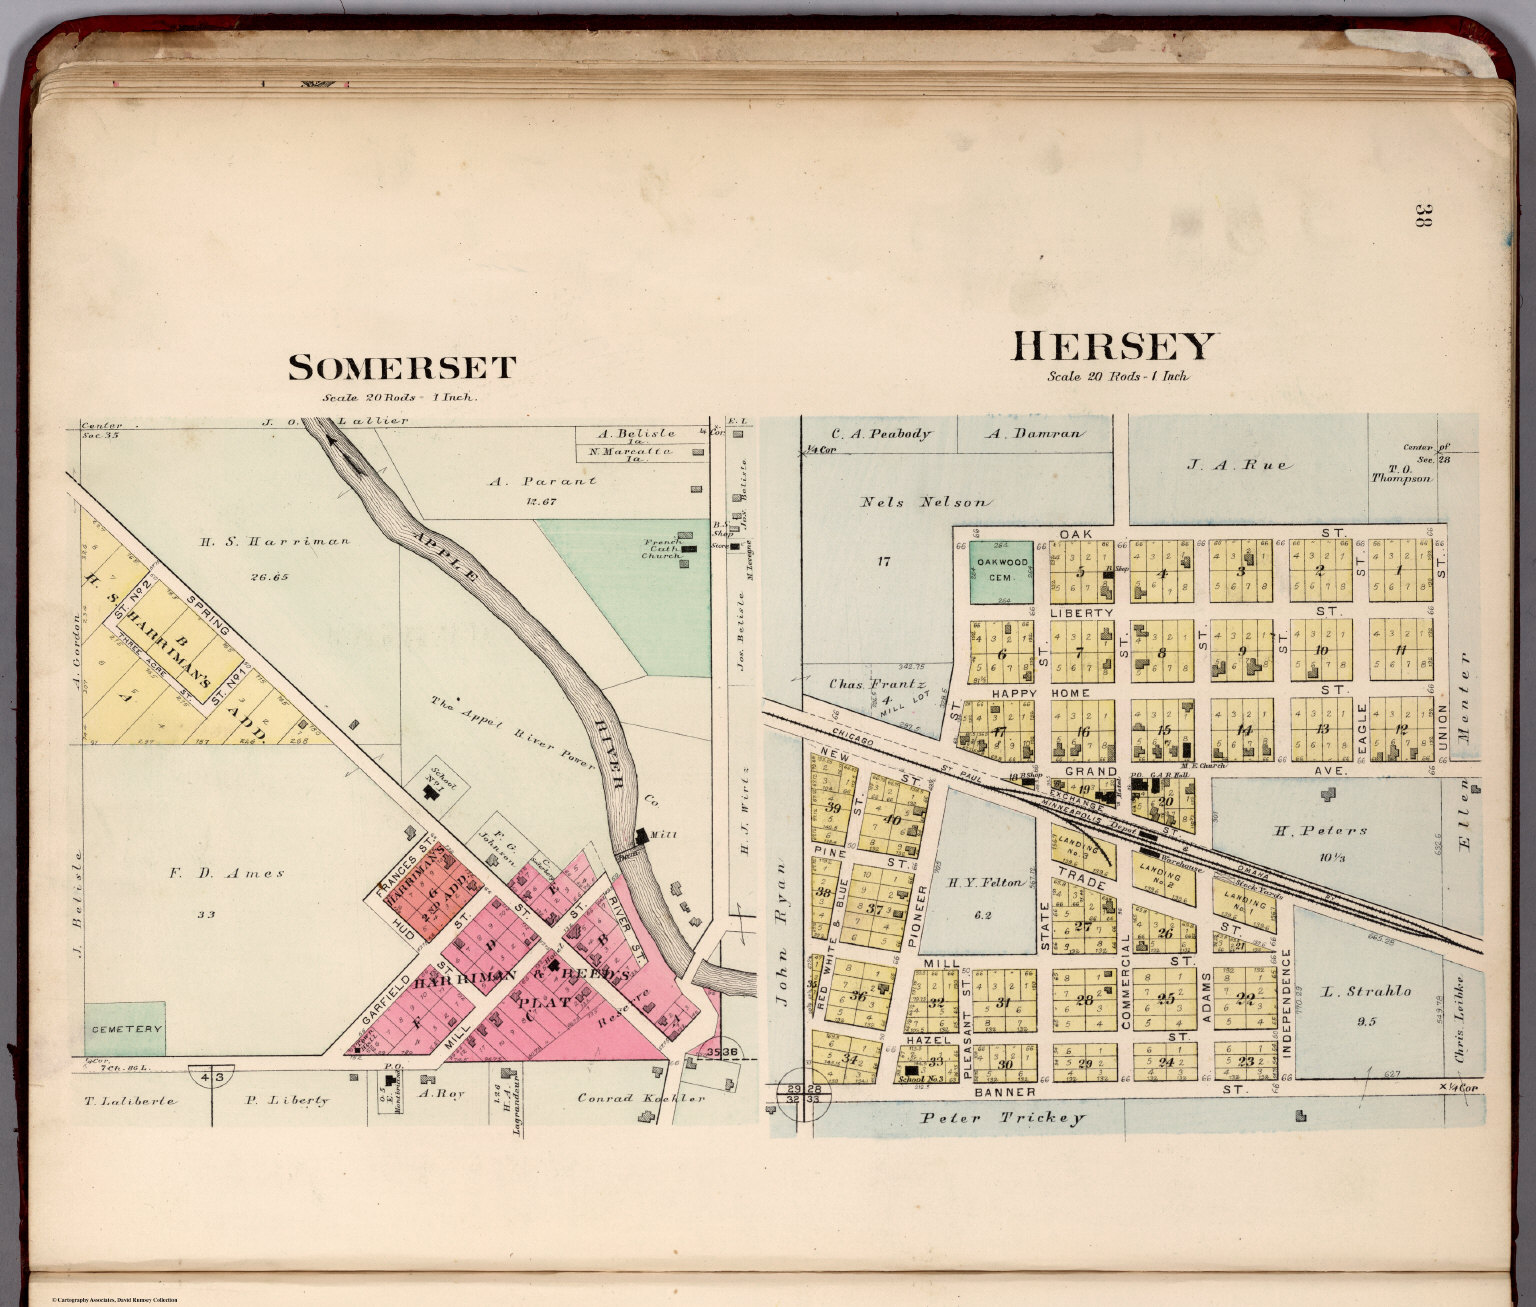 Somerset. Hersey, Wisconsin. - David Rumsey Historical Map Collection